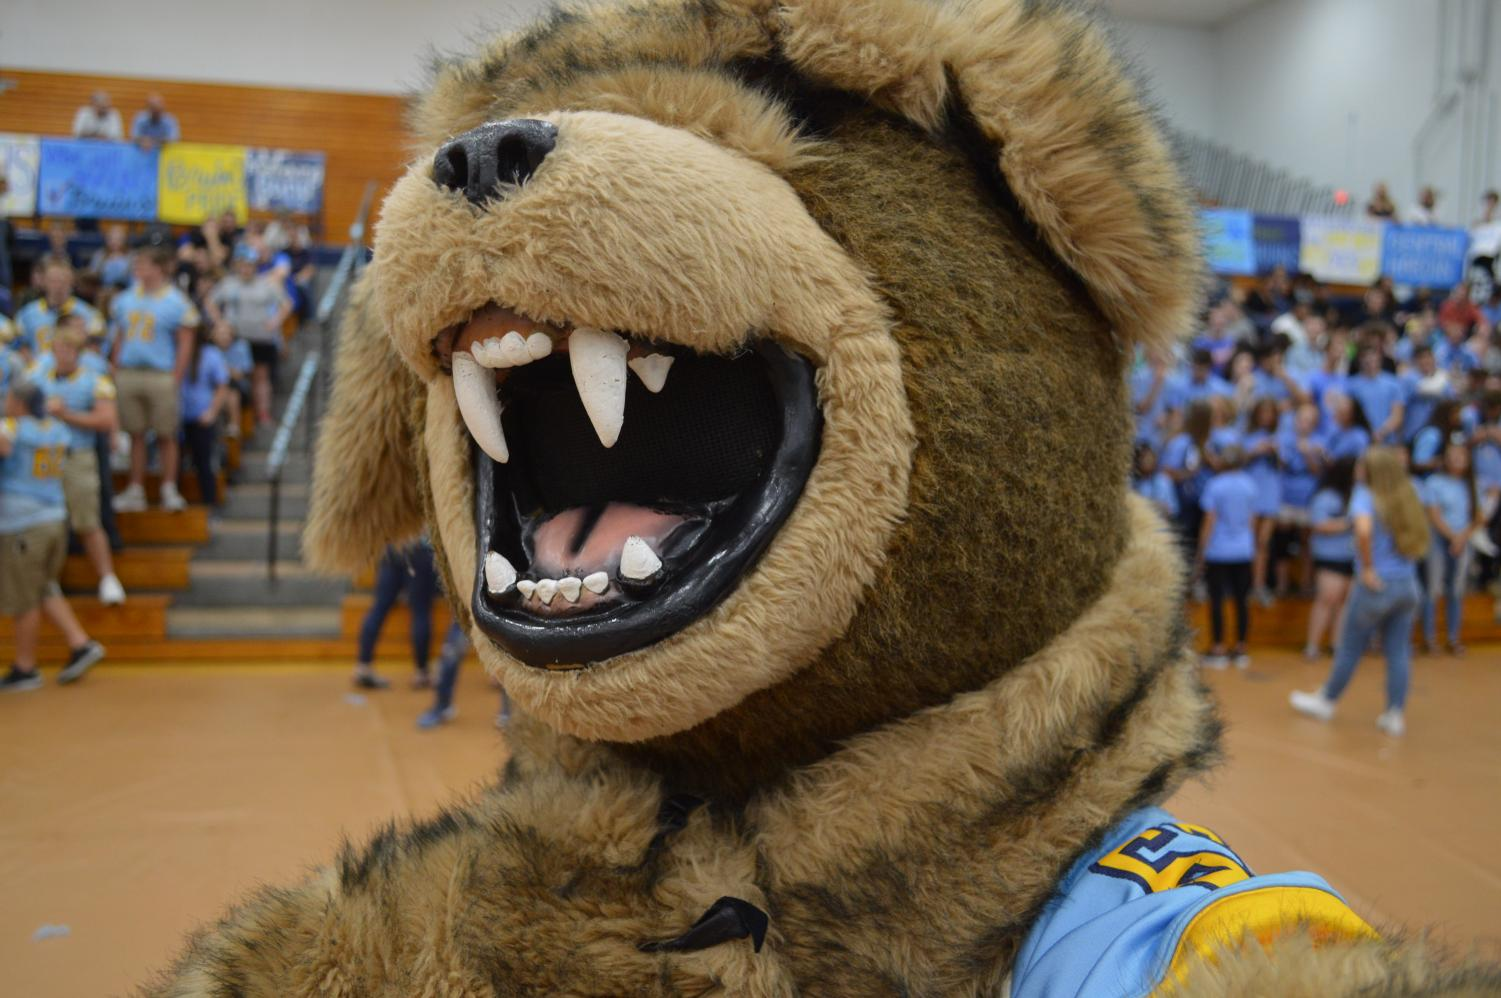 The bruin mascot takes a selfie.